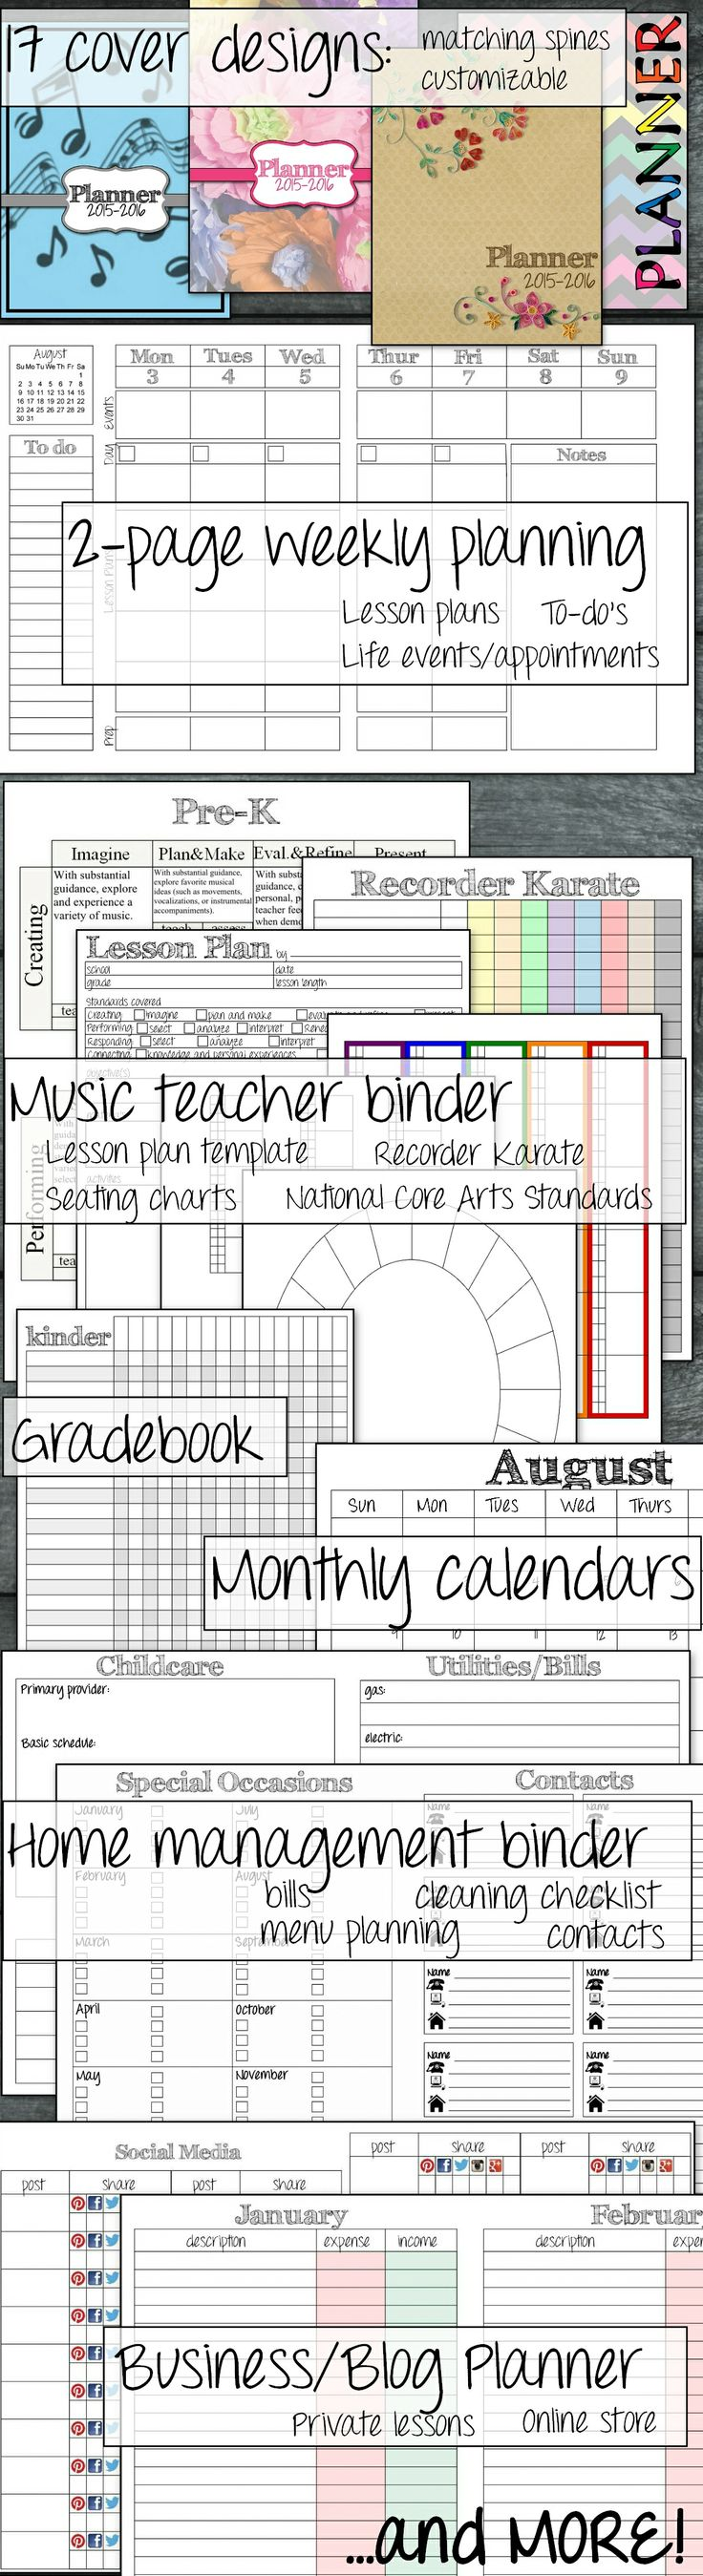 Entire Life Music Teacher Planner and Organization Binder: five dated lessons